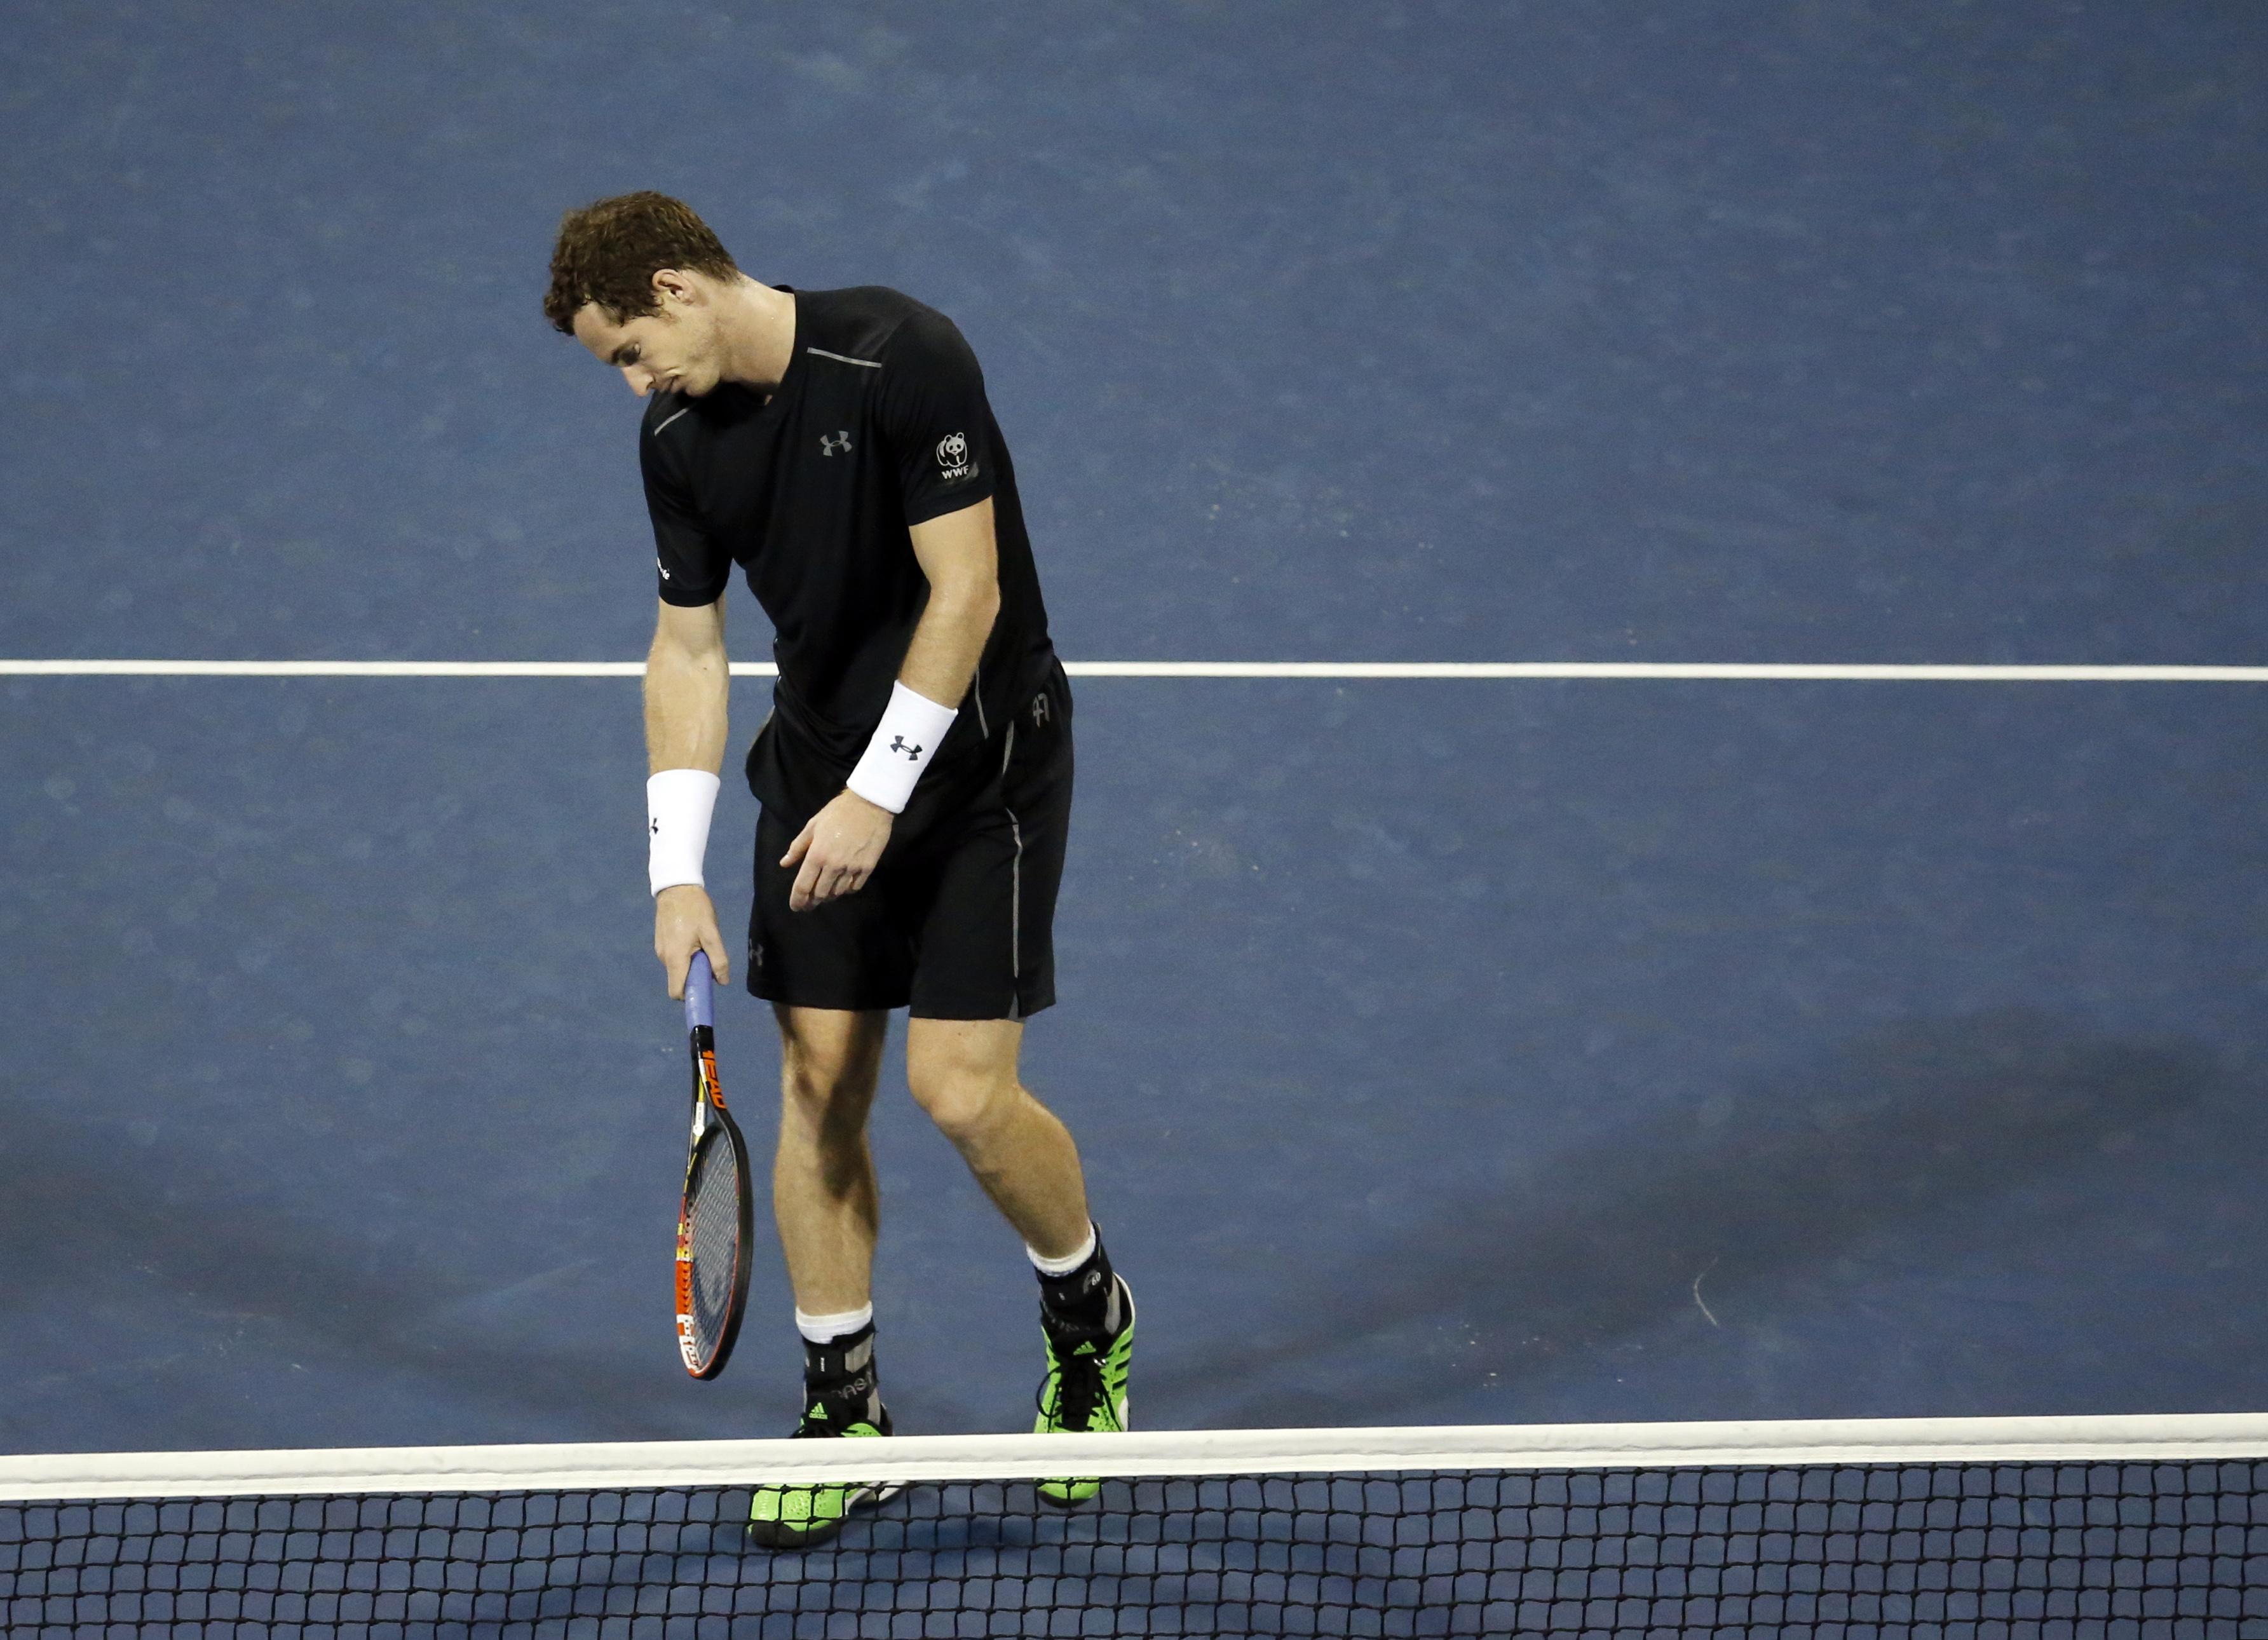 Andy Murray, of the United Kingdom, reacts after losing a point to Kevin Anderson, of South Africa, during the fourth round of the U.S. Open tennis tournament, Monday, Sept. 7, 2015, in New York. (AP Photo/Jason DeCrow)